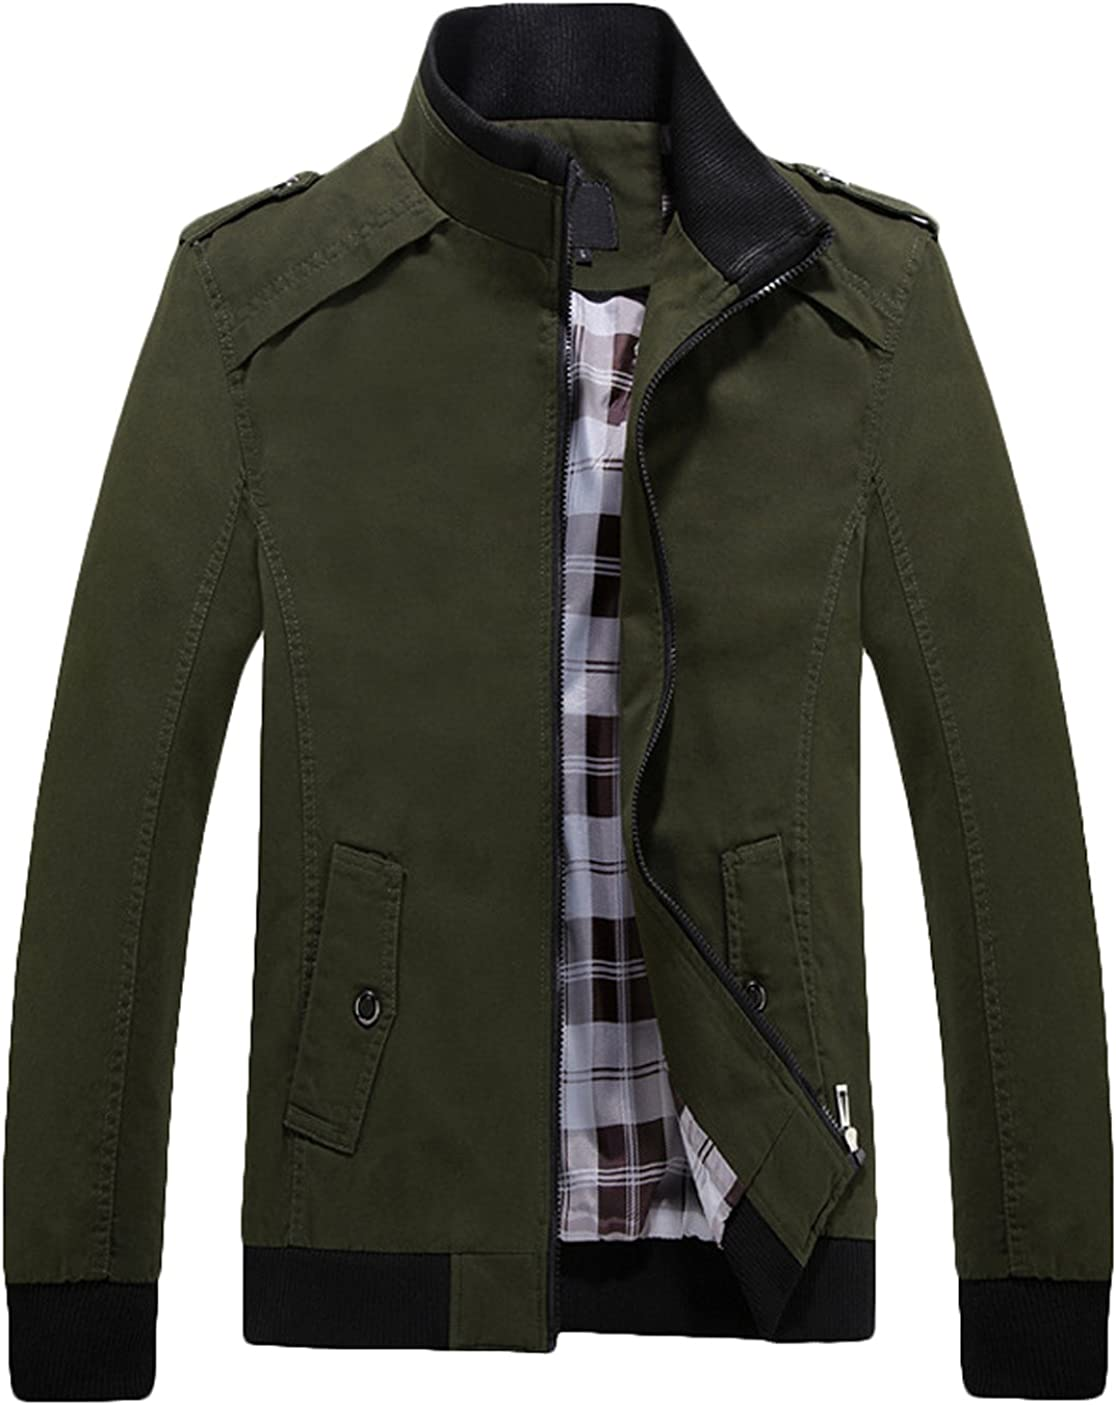 Youhan Free Shipping Cheap Bargain Gift Popular popular Men's Casual Fitted Stand Jacket with Cotton Shoul Collar